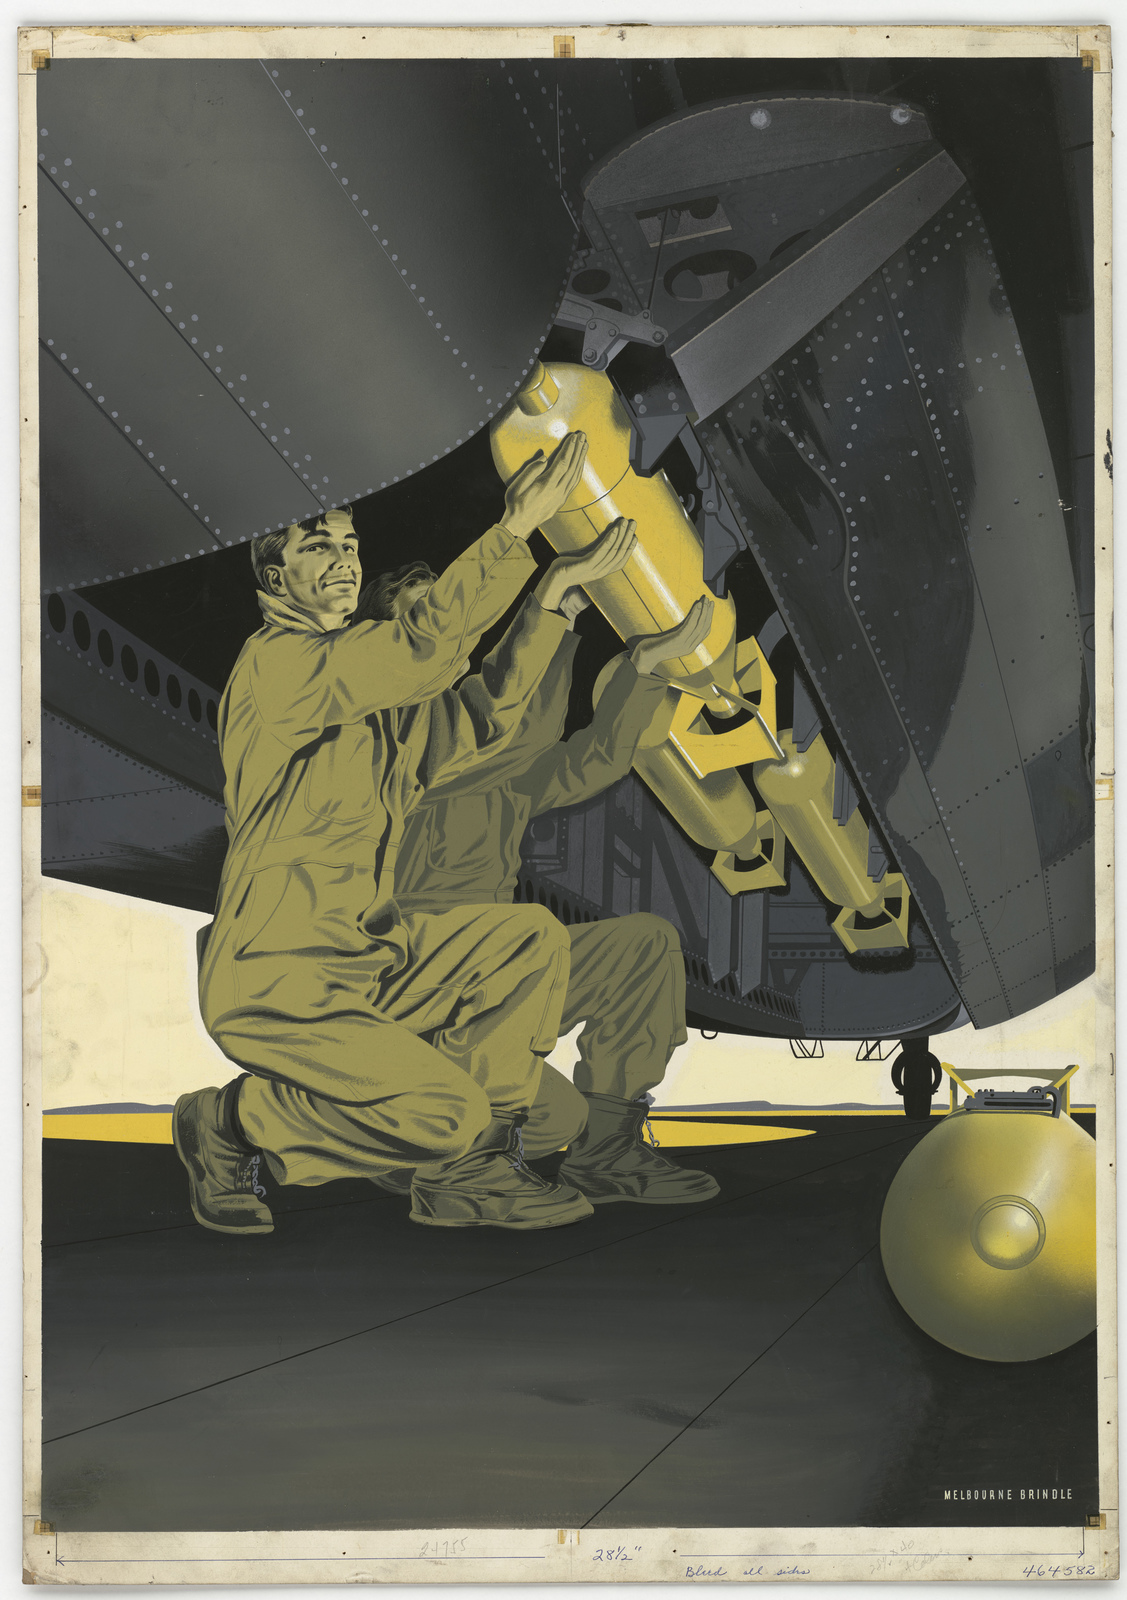 [Two soldiers loading bombs into the belly of an airplane.] [Melbourne Brindle]